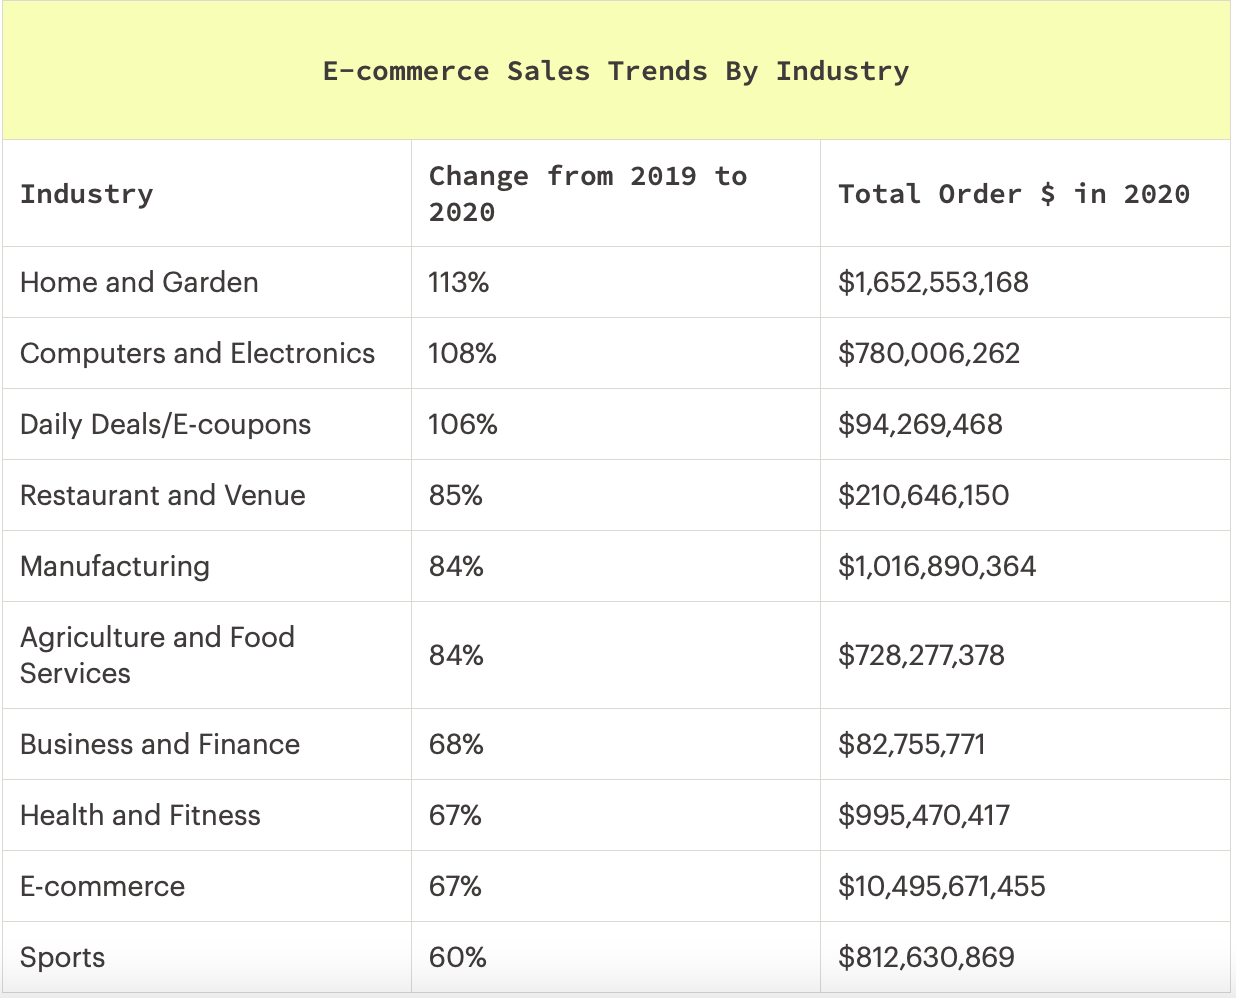 ecommerce sales trends by industry 2020